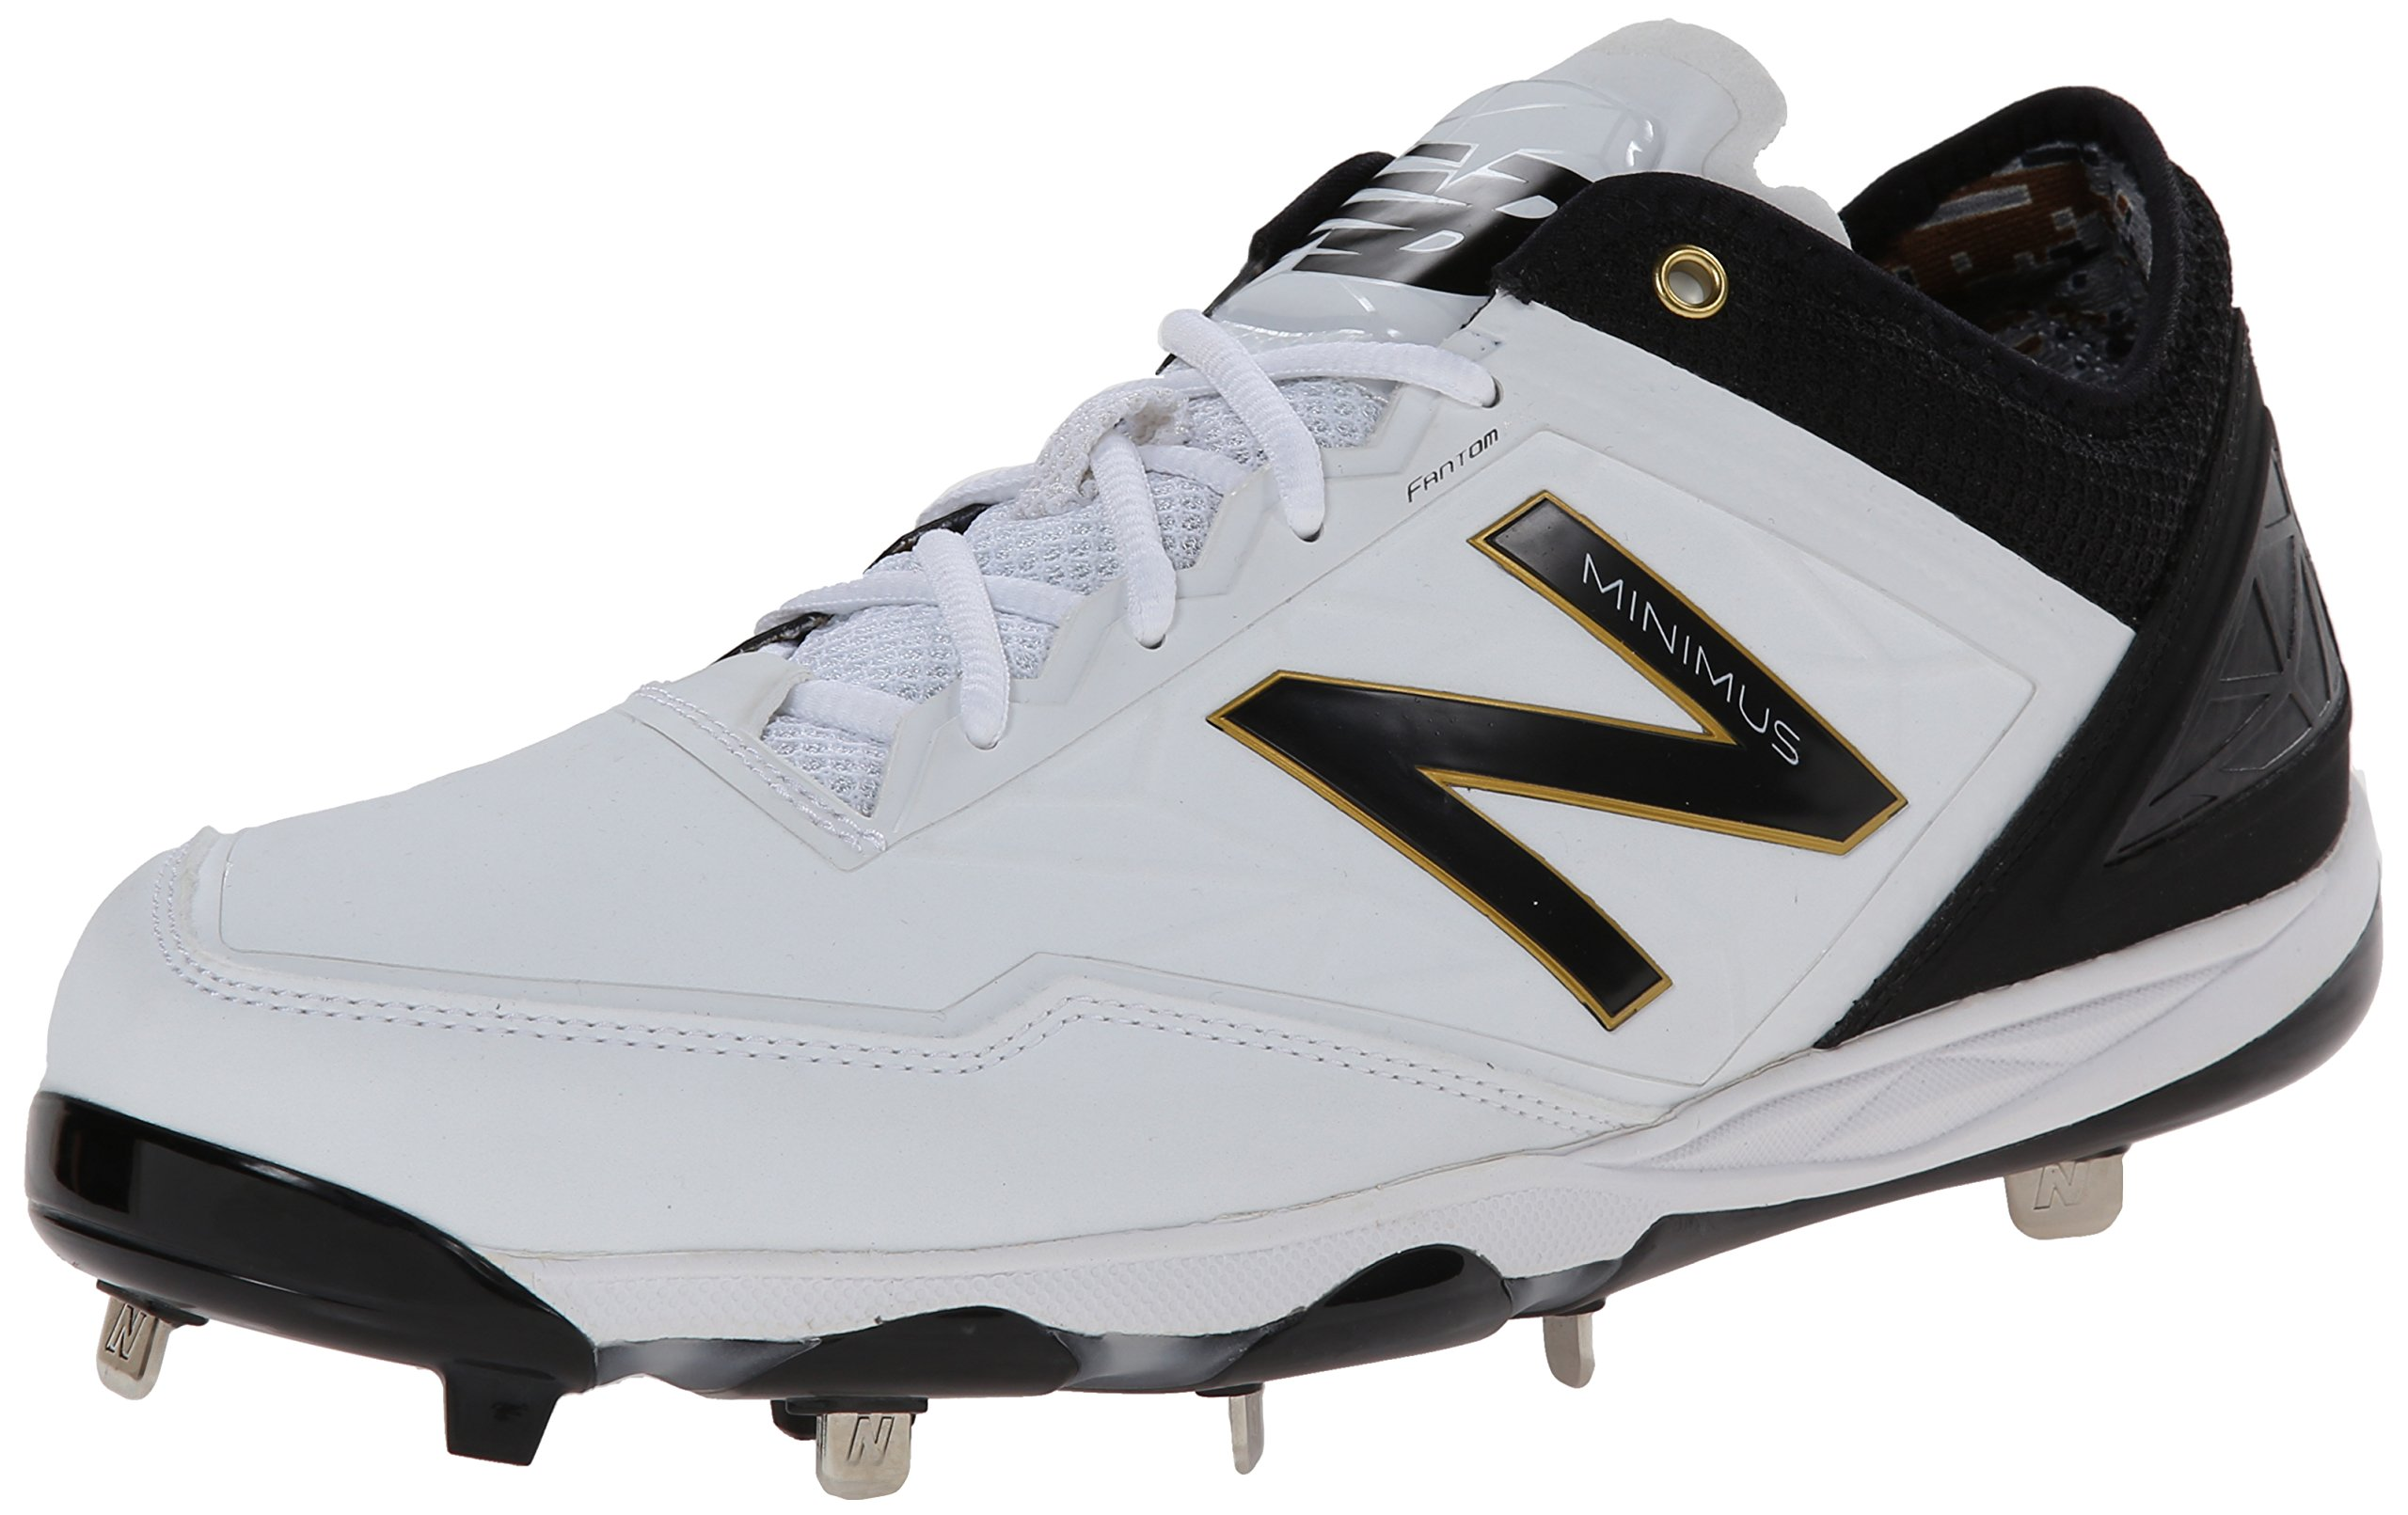 New Balance Men's MBB Minimus Low Baseball Shoe,White/Black,12 D US